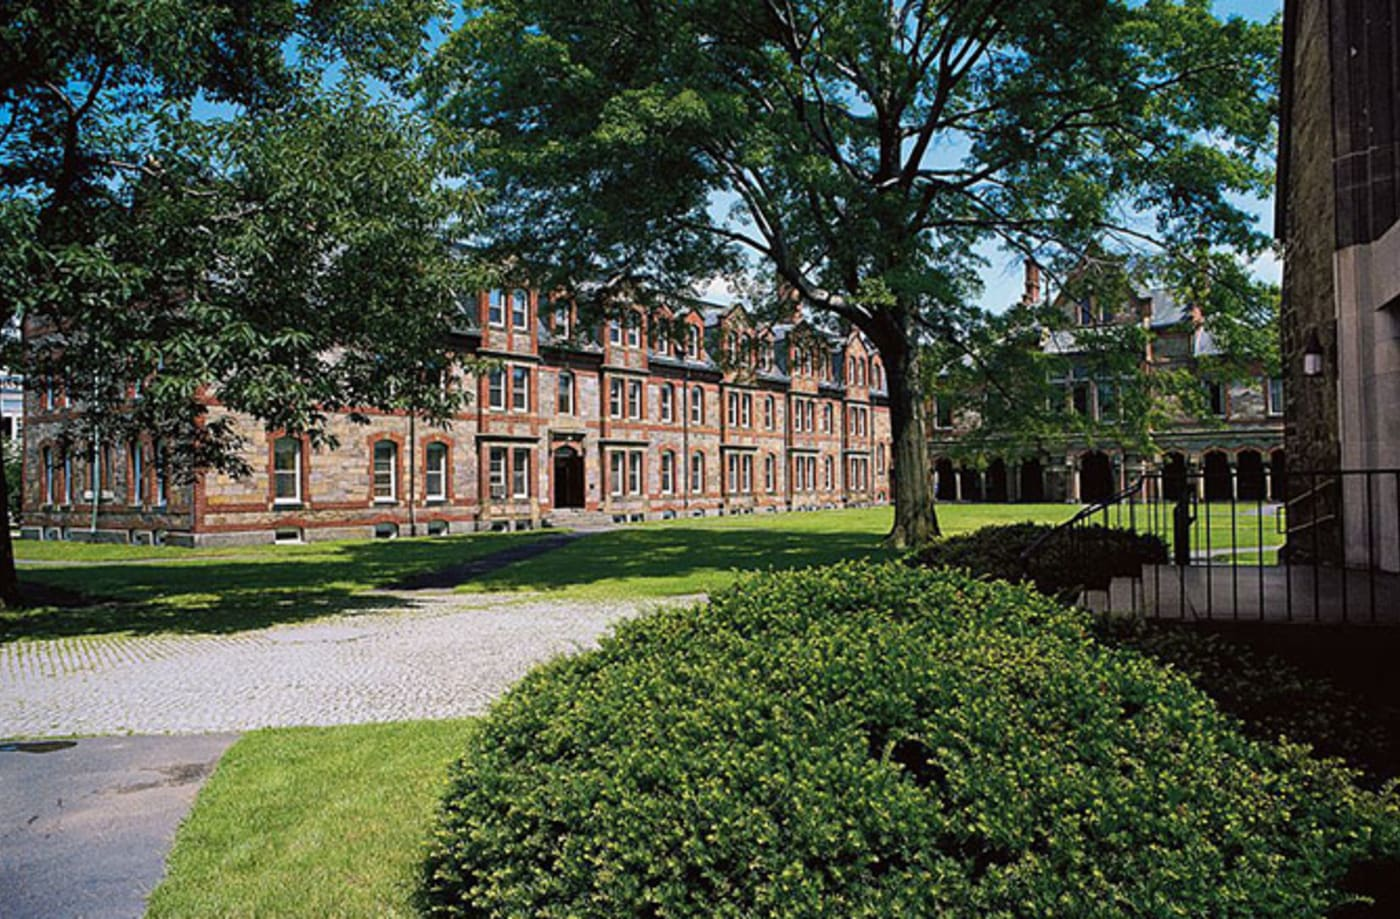 This is a photo of Harvard.